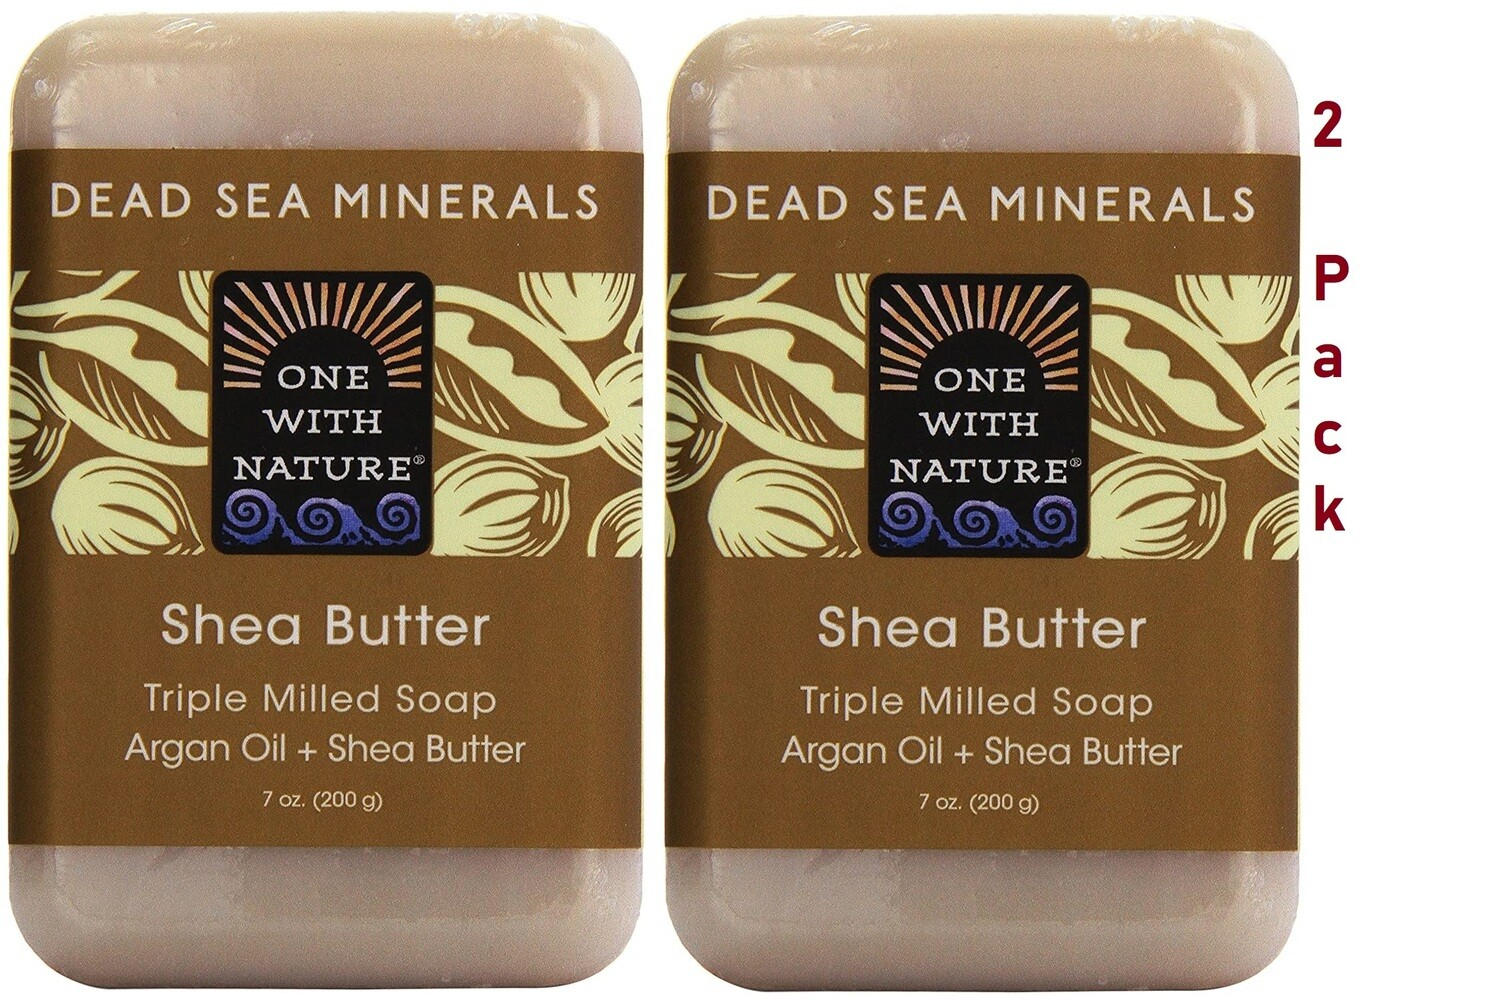 One With Nature Dead Sea Minerals Shea Butter Bar Soap, 7 Ounce, Pack of 2